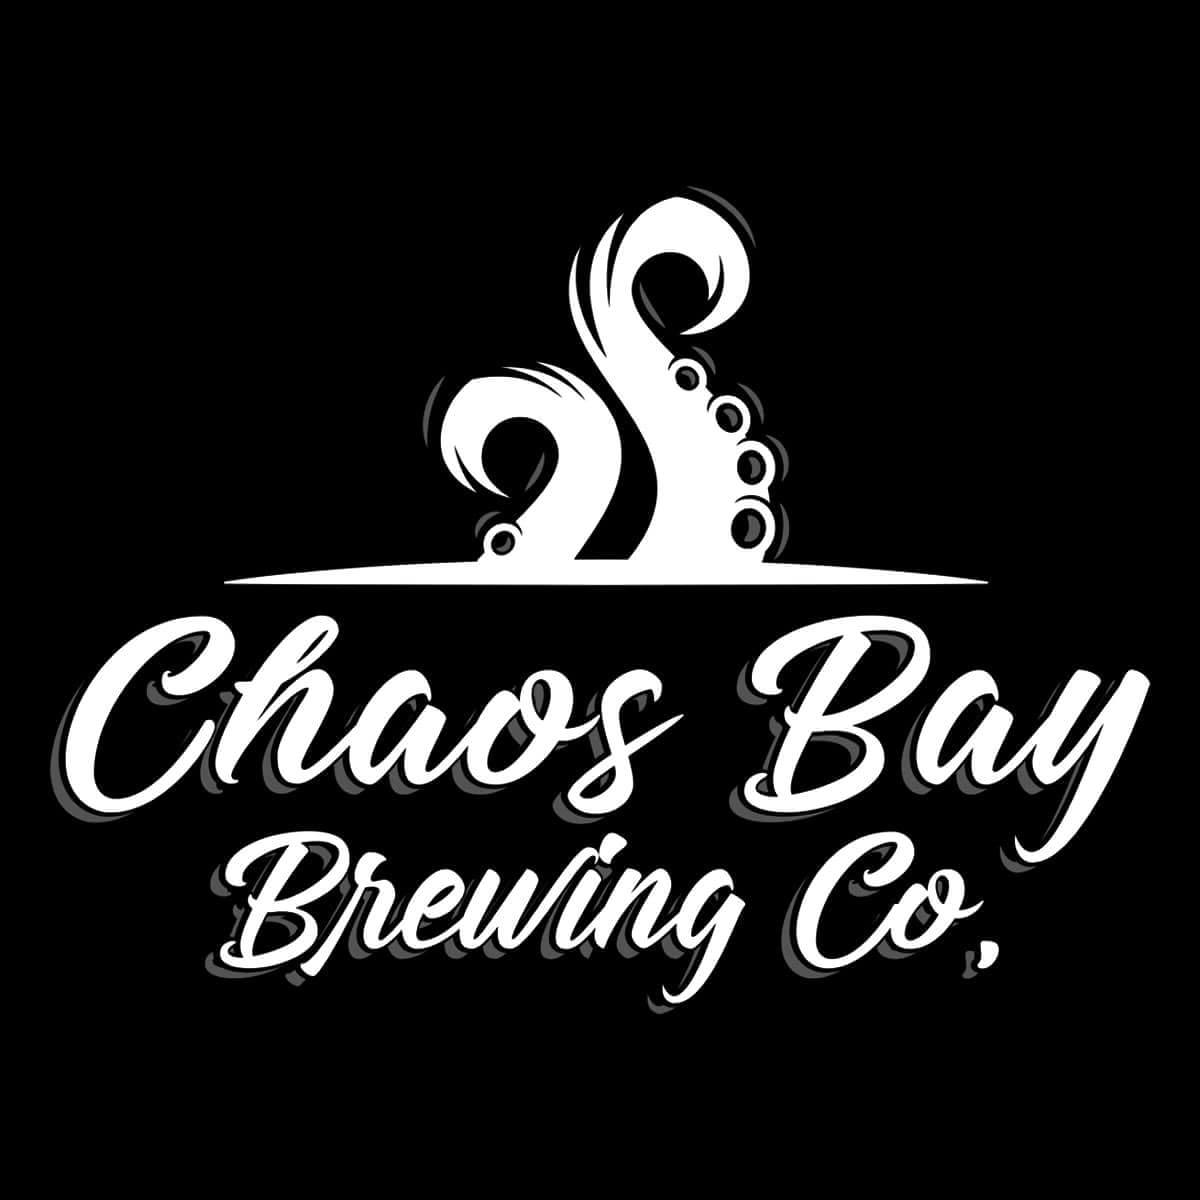 The new logo art for Chaos Bay Brewing Co.